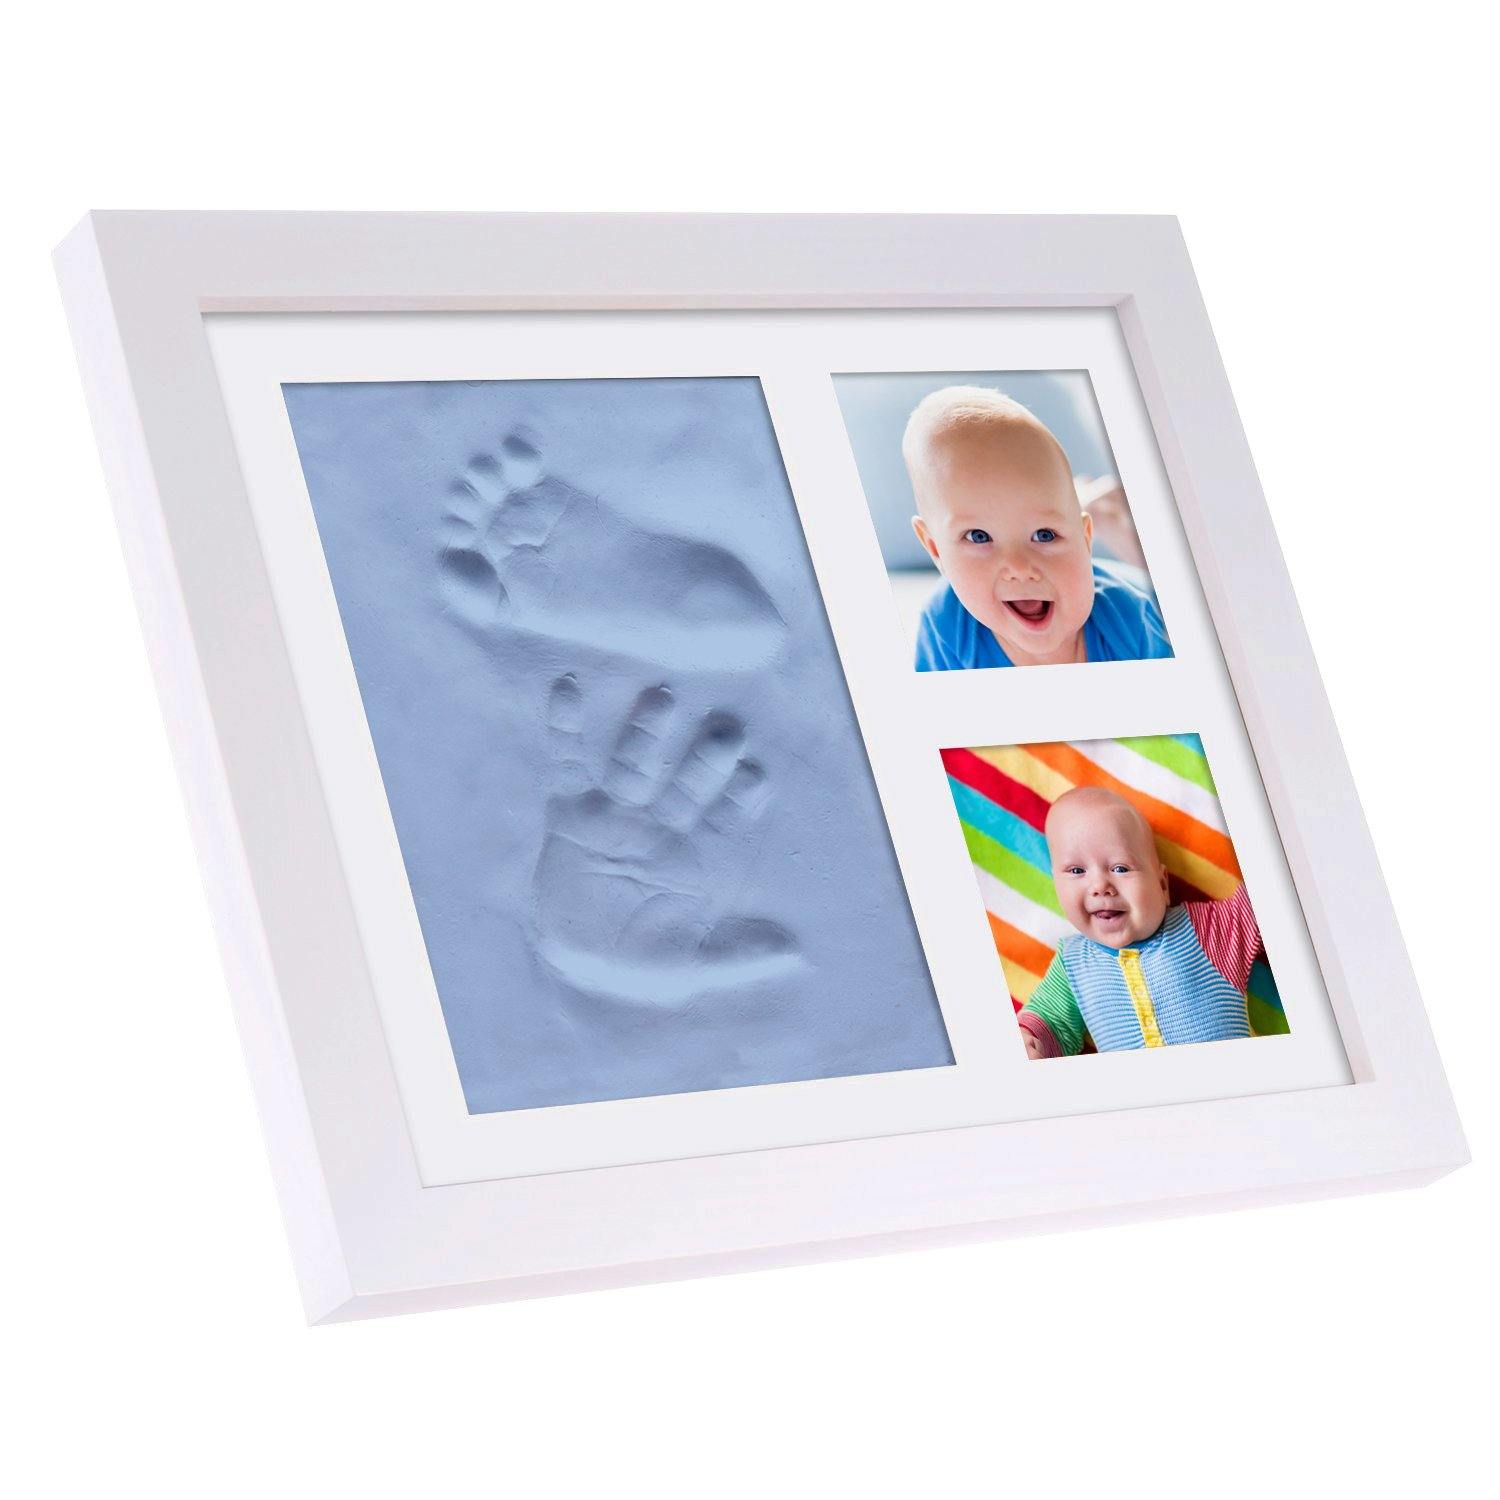 BABYSIMBA Baby Presents - Baby hand and footprint kit kids Picture Frame. New Baby Christmas Gift/Christening Gift Present. Certified Safe Clay baby hand and footprint kits for Newborns and Babies Simbablue1